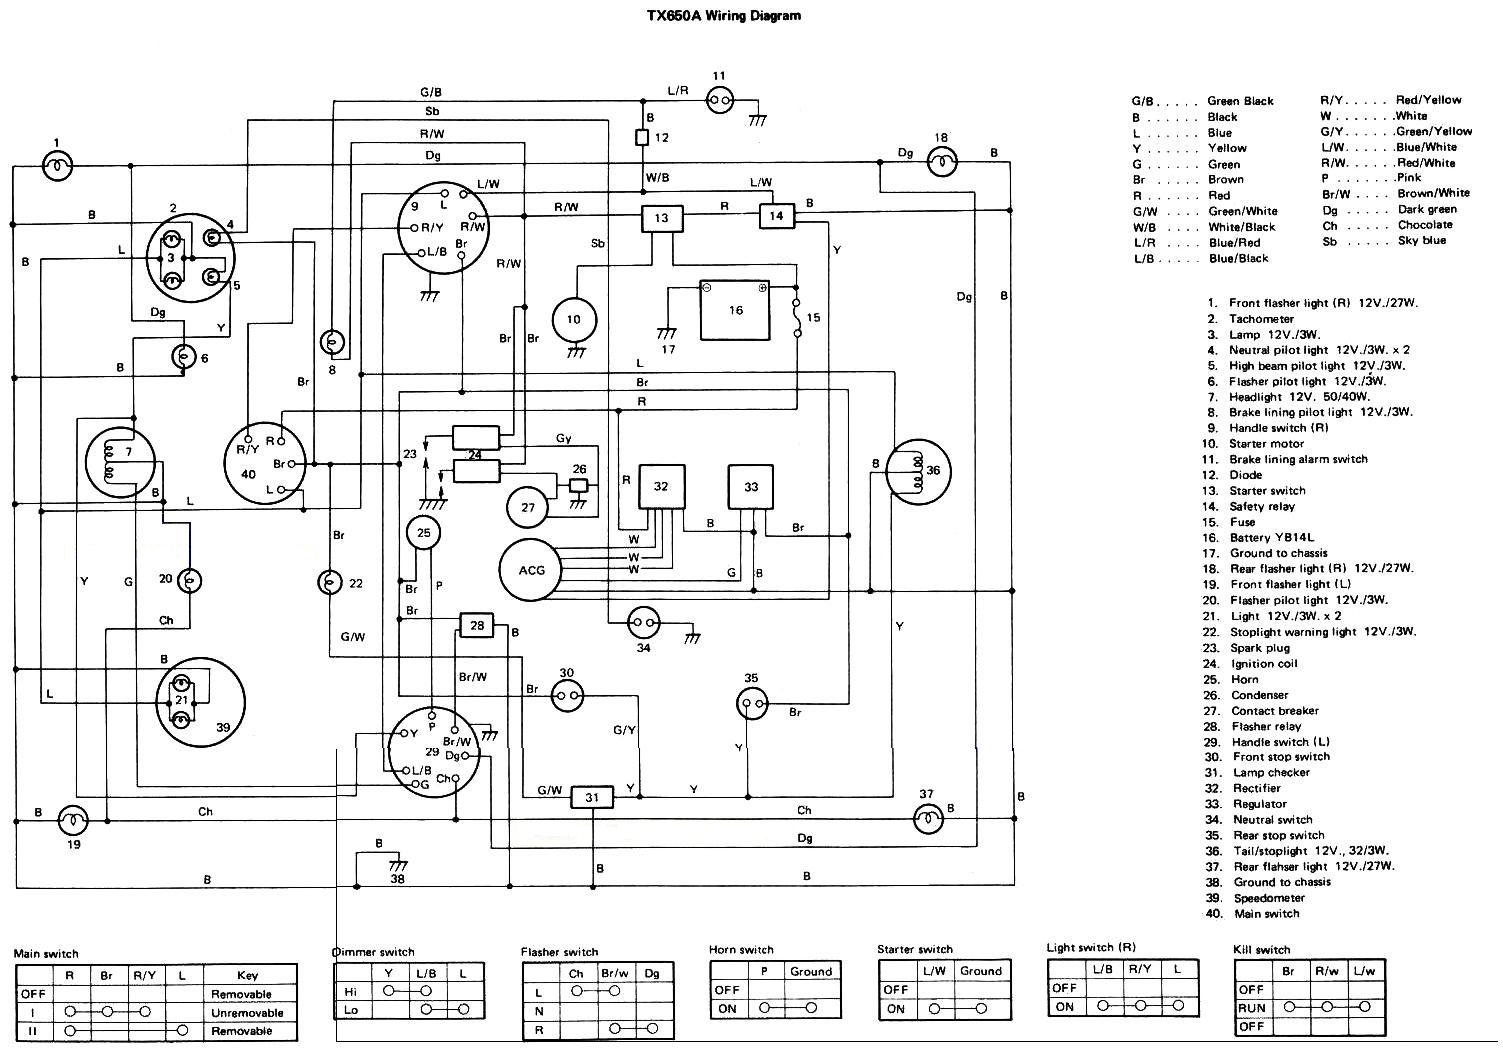 1981 yamaha xt 250 wiring diagram   33 wiring diagram